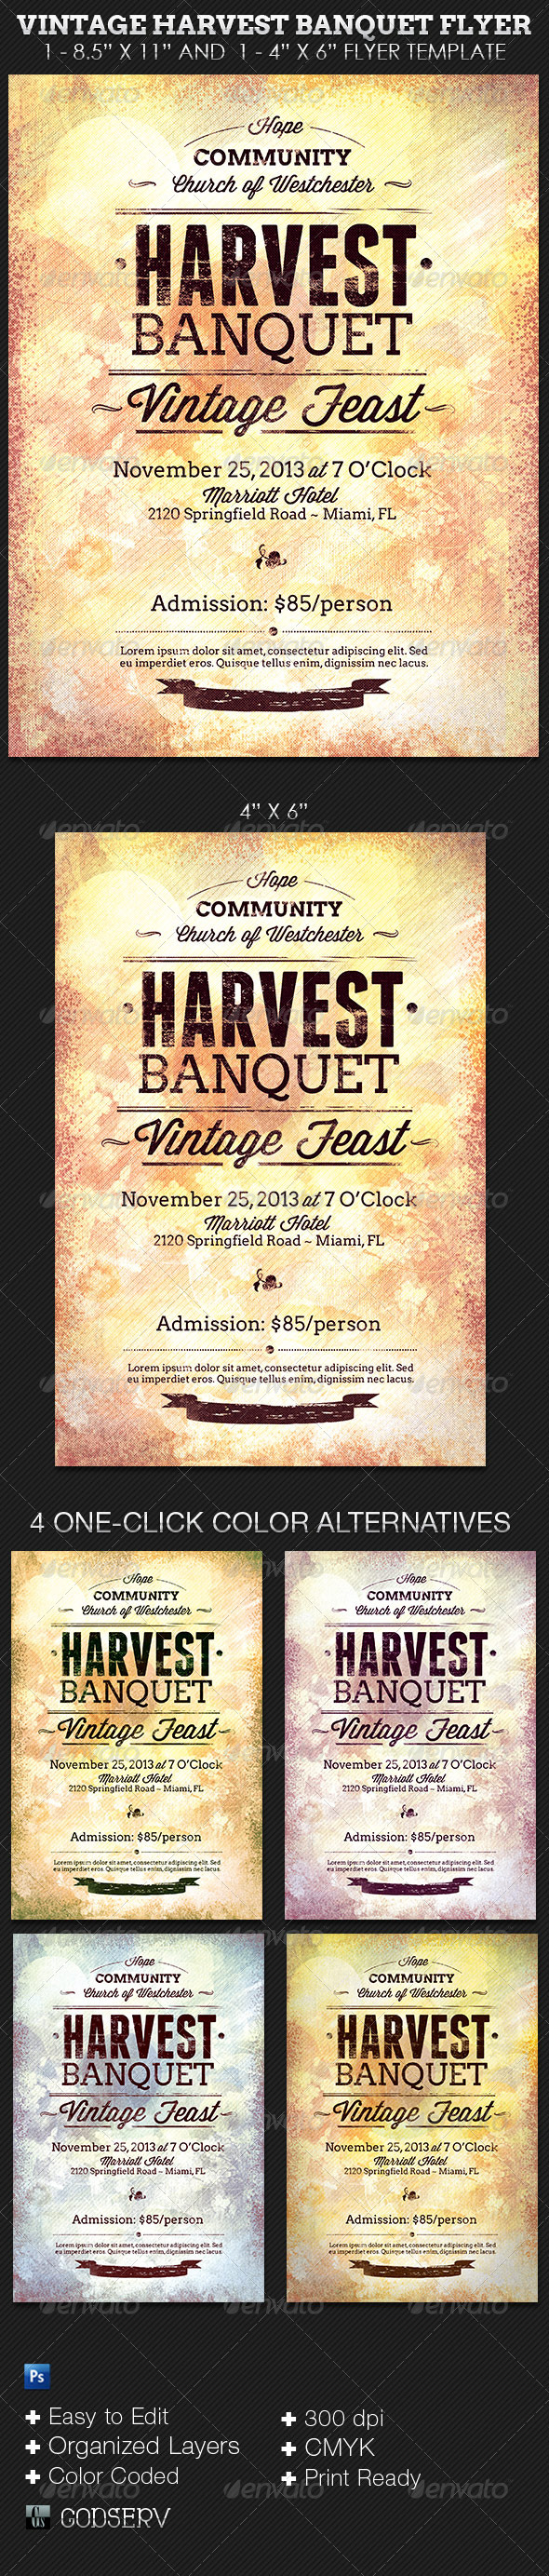 banquet flyer nede whyanything co